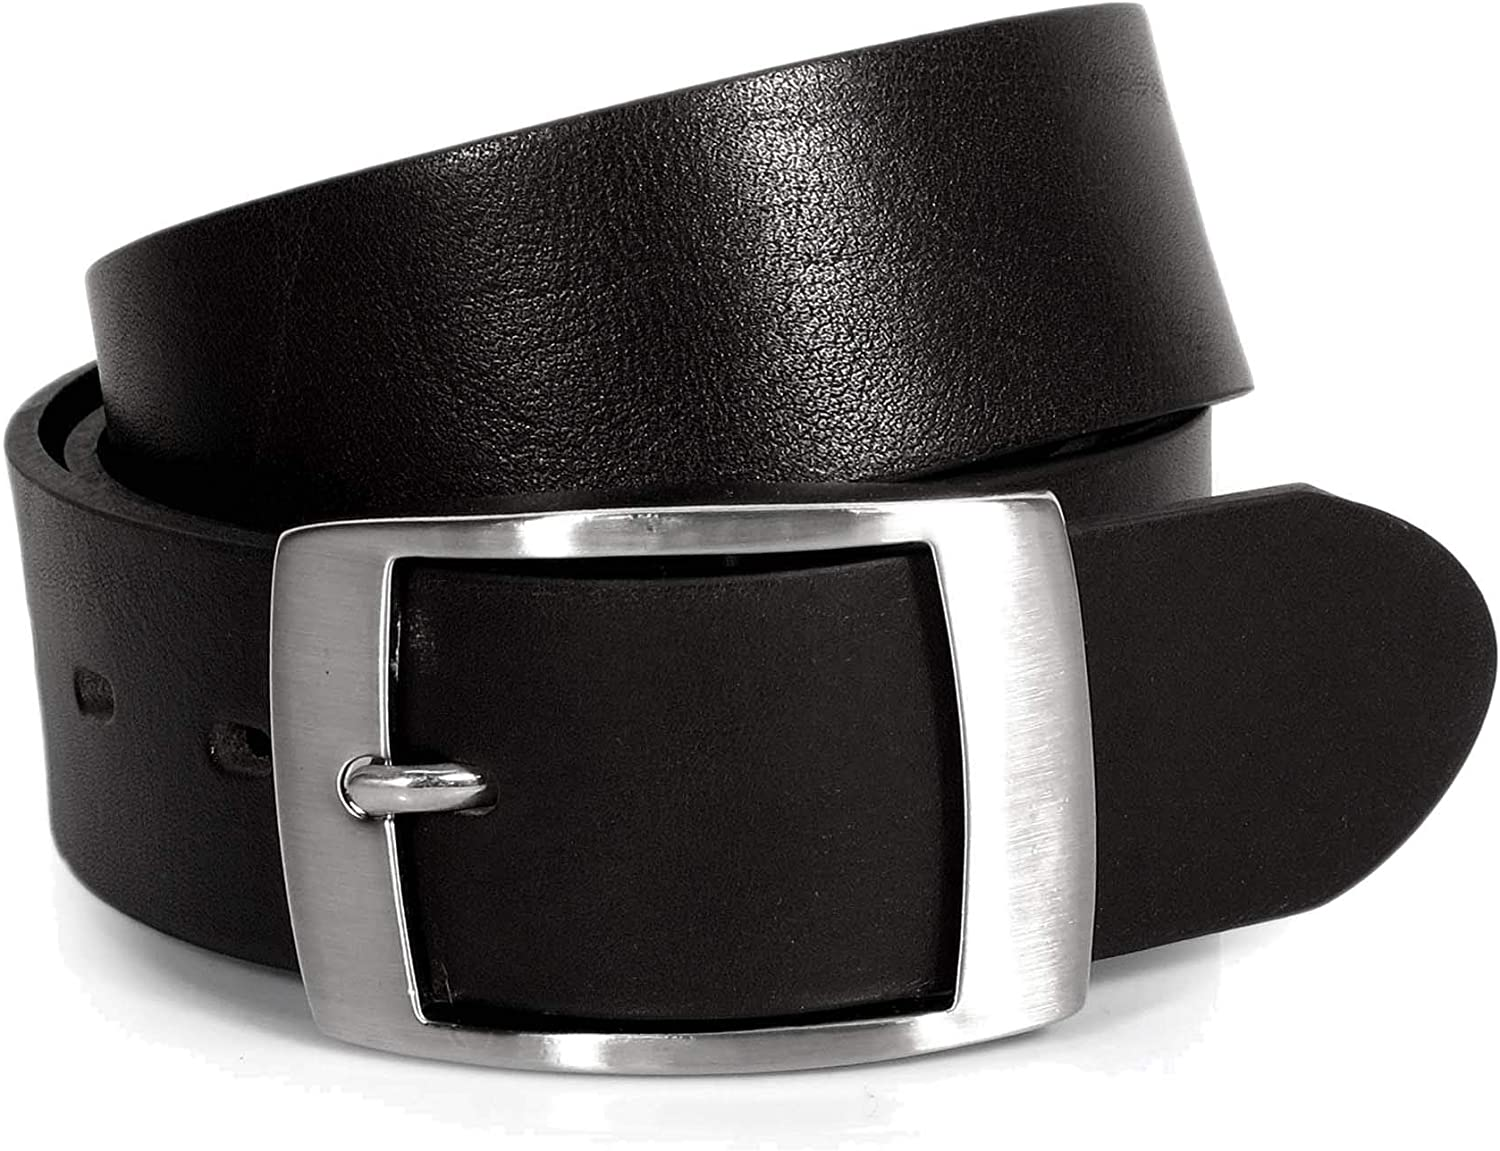 CW7 Womens Real Genuine Leather Black Belt 1.5 Wide S-XL Thick Long Casual Jeans